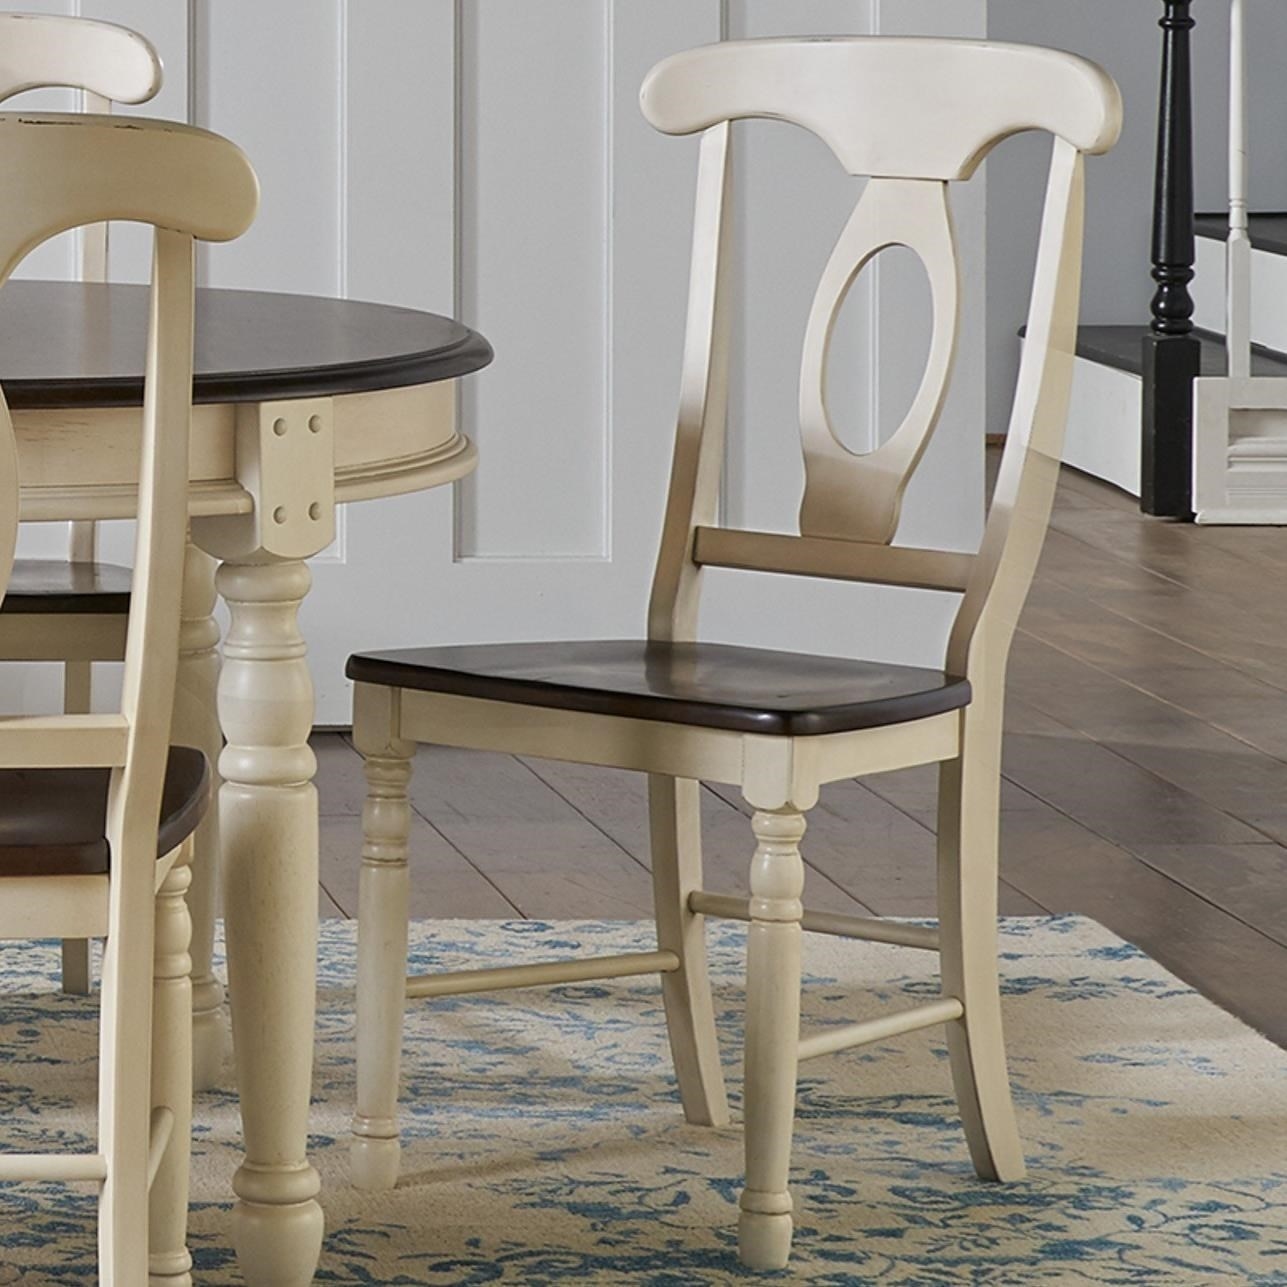 AAmerica British Isles   CO Two Tone Napoleon Dining Side Chair